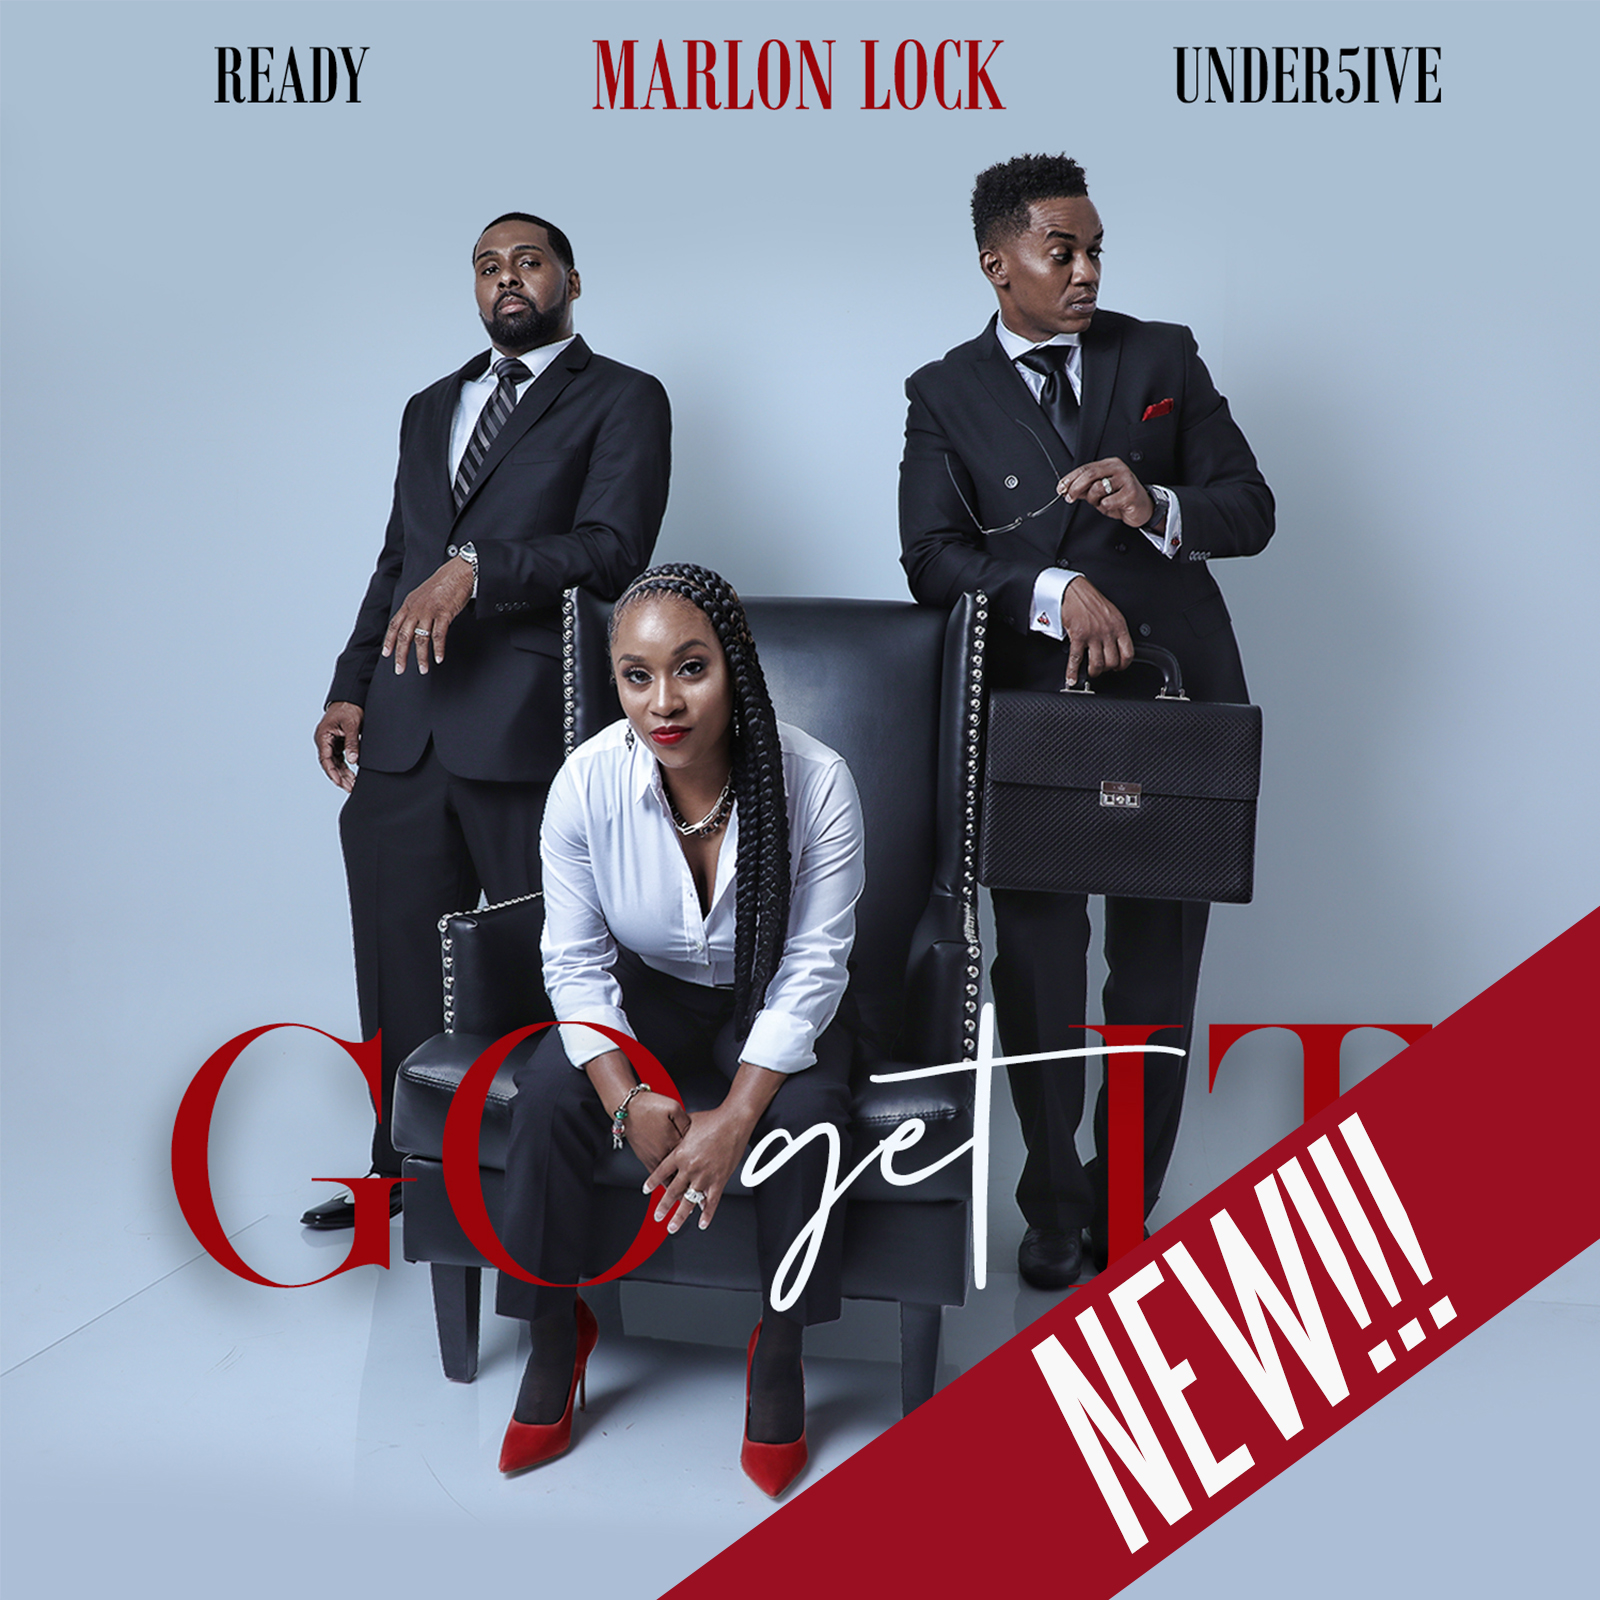 Marlon_Lock_Go_Get_It_ft_Ready_Under5ive_new copy